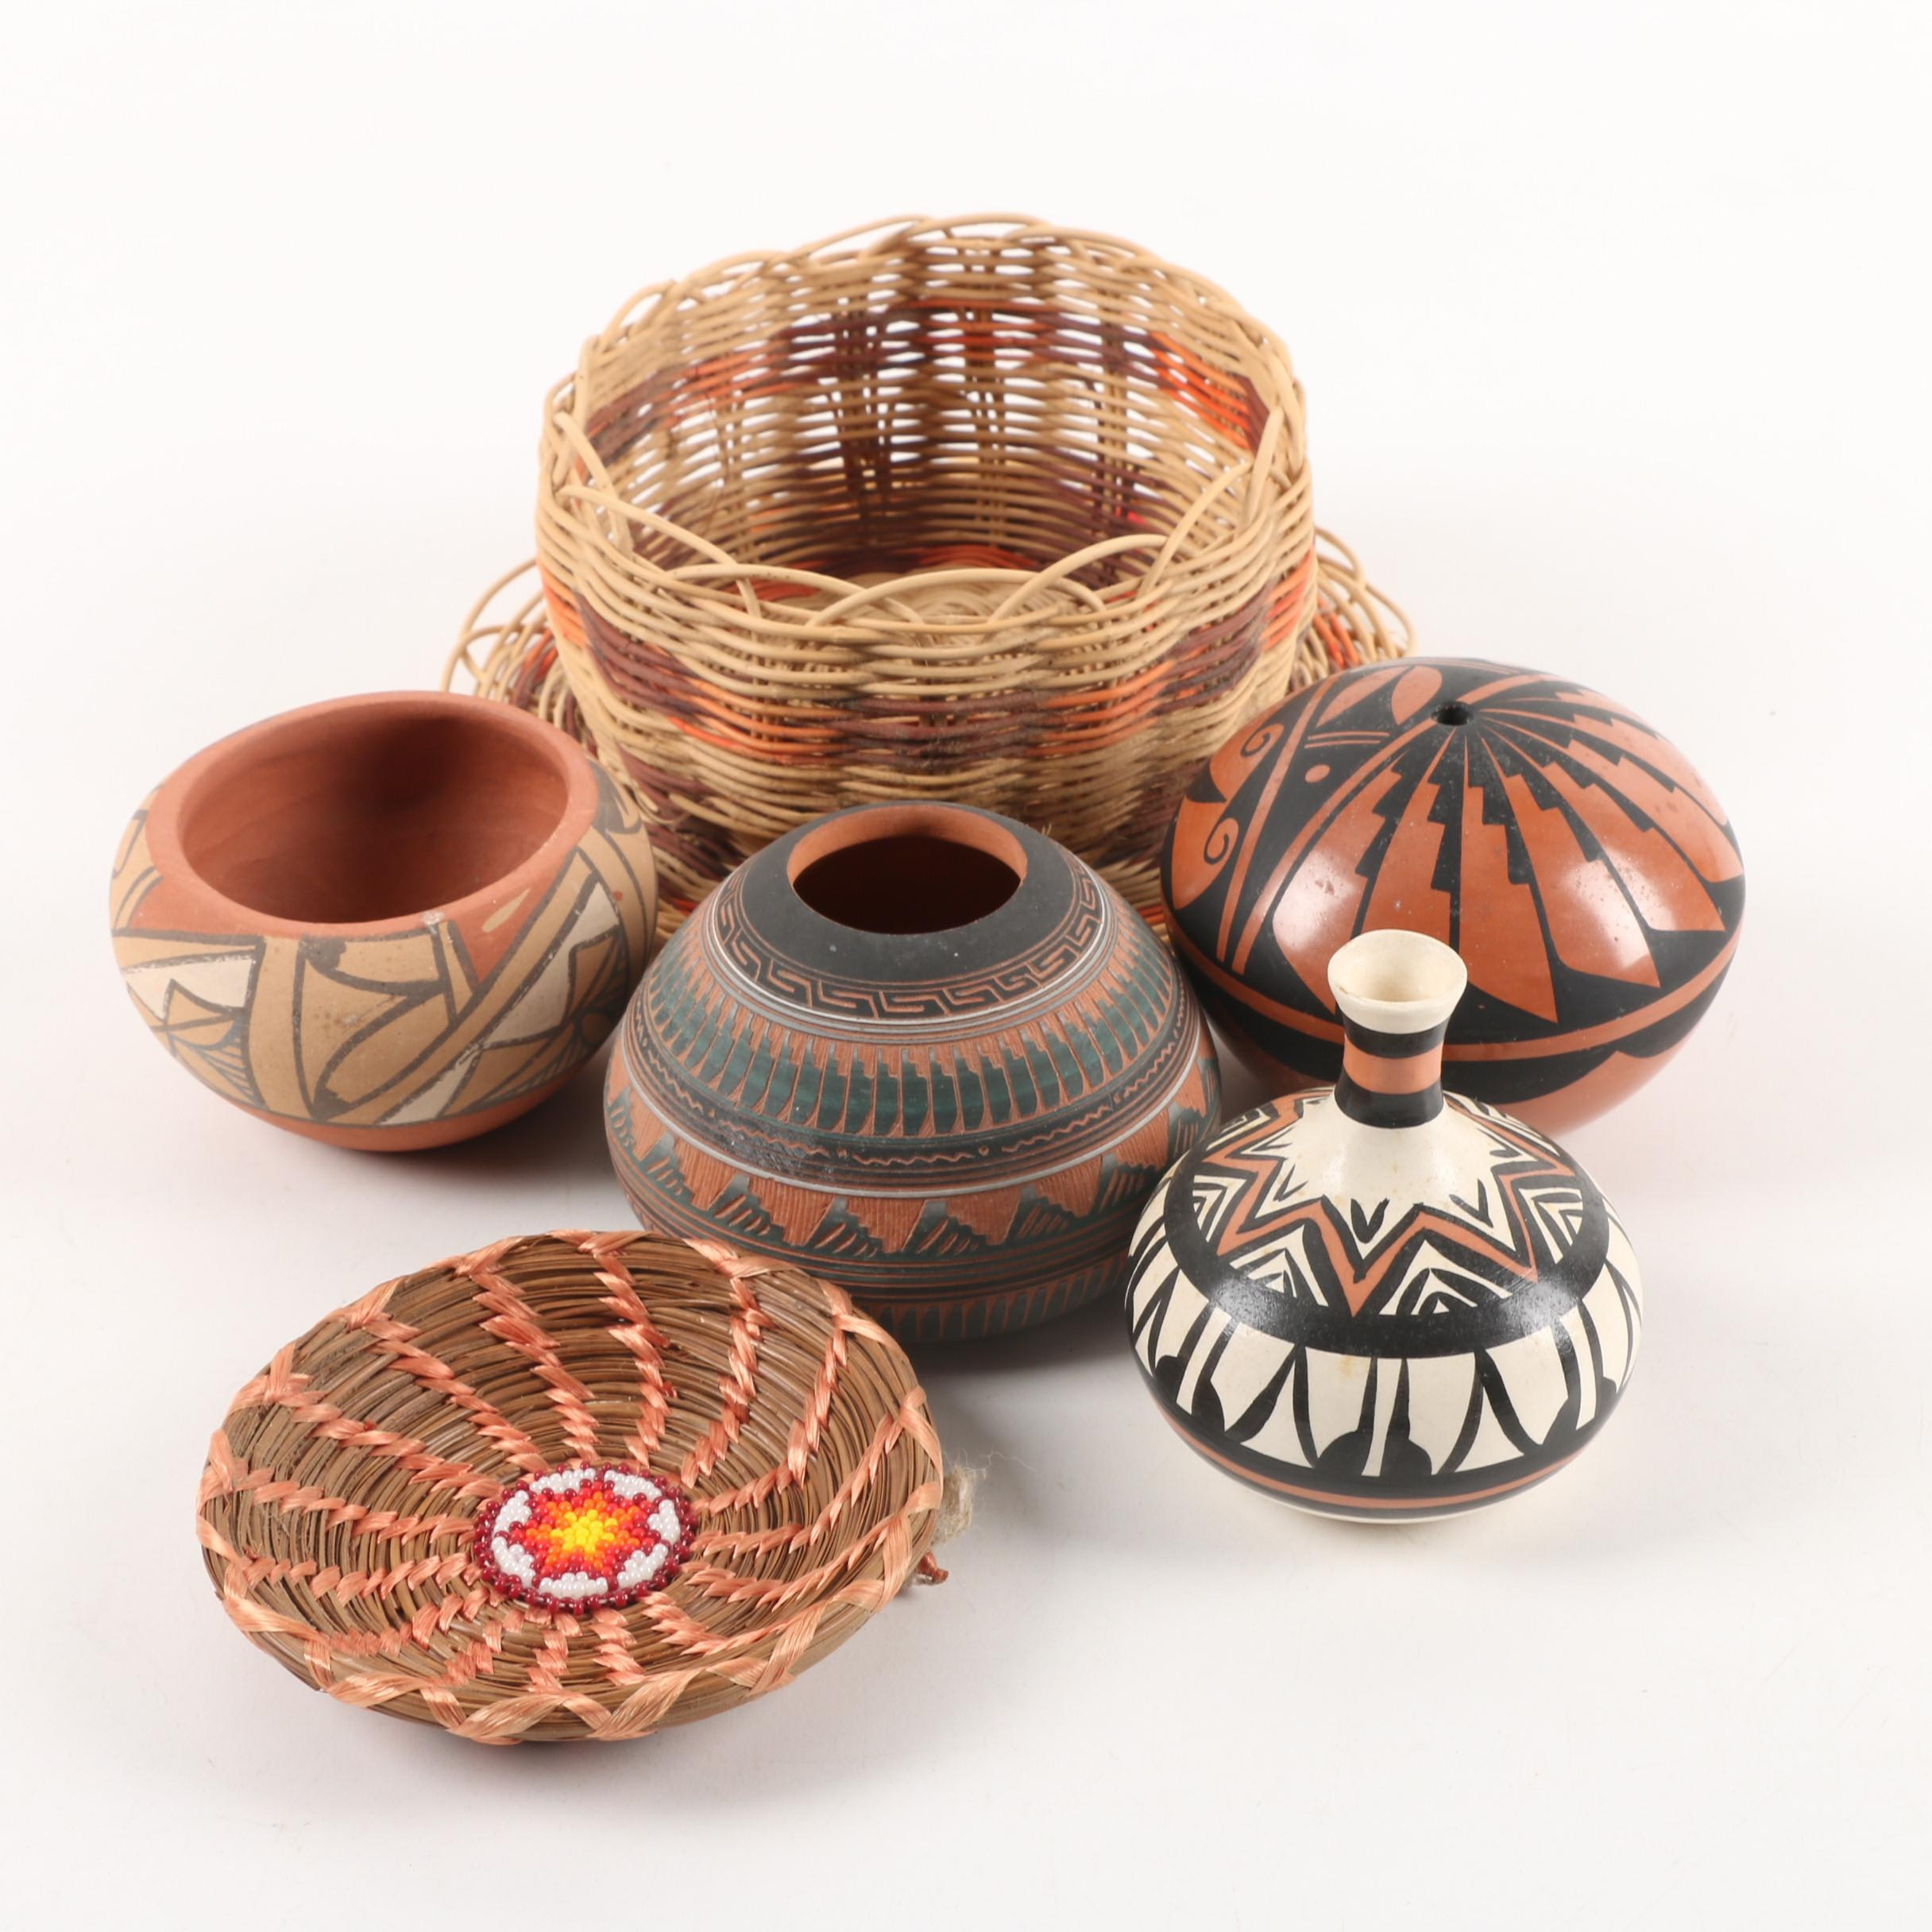 Native American and Native American Inspired Pottery and Baskets